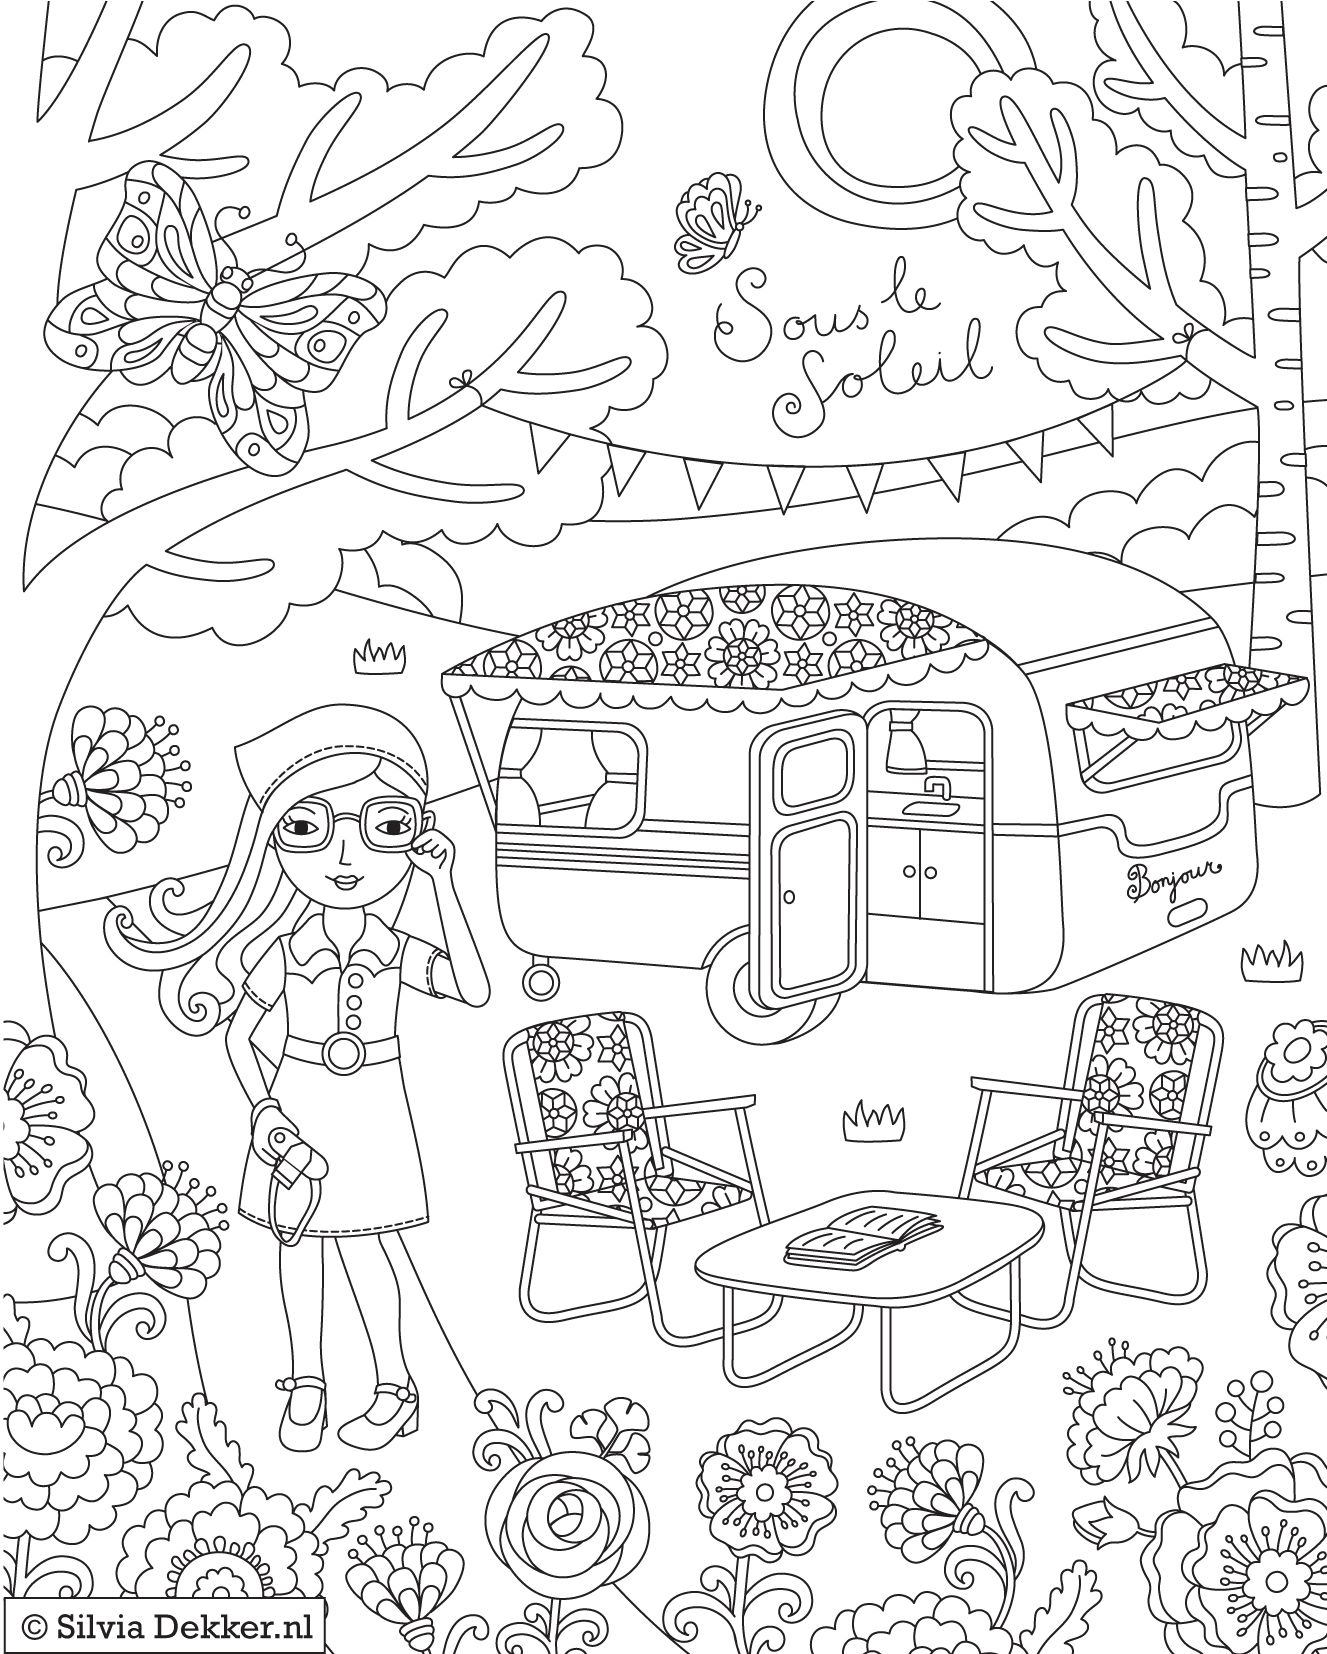 Camping Coloring page for Flow magazine by Silvia Dekker | Printable ...